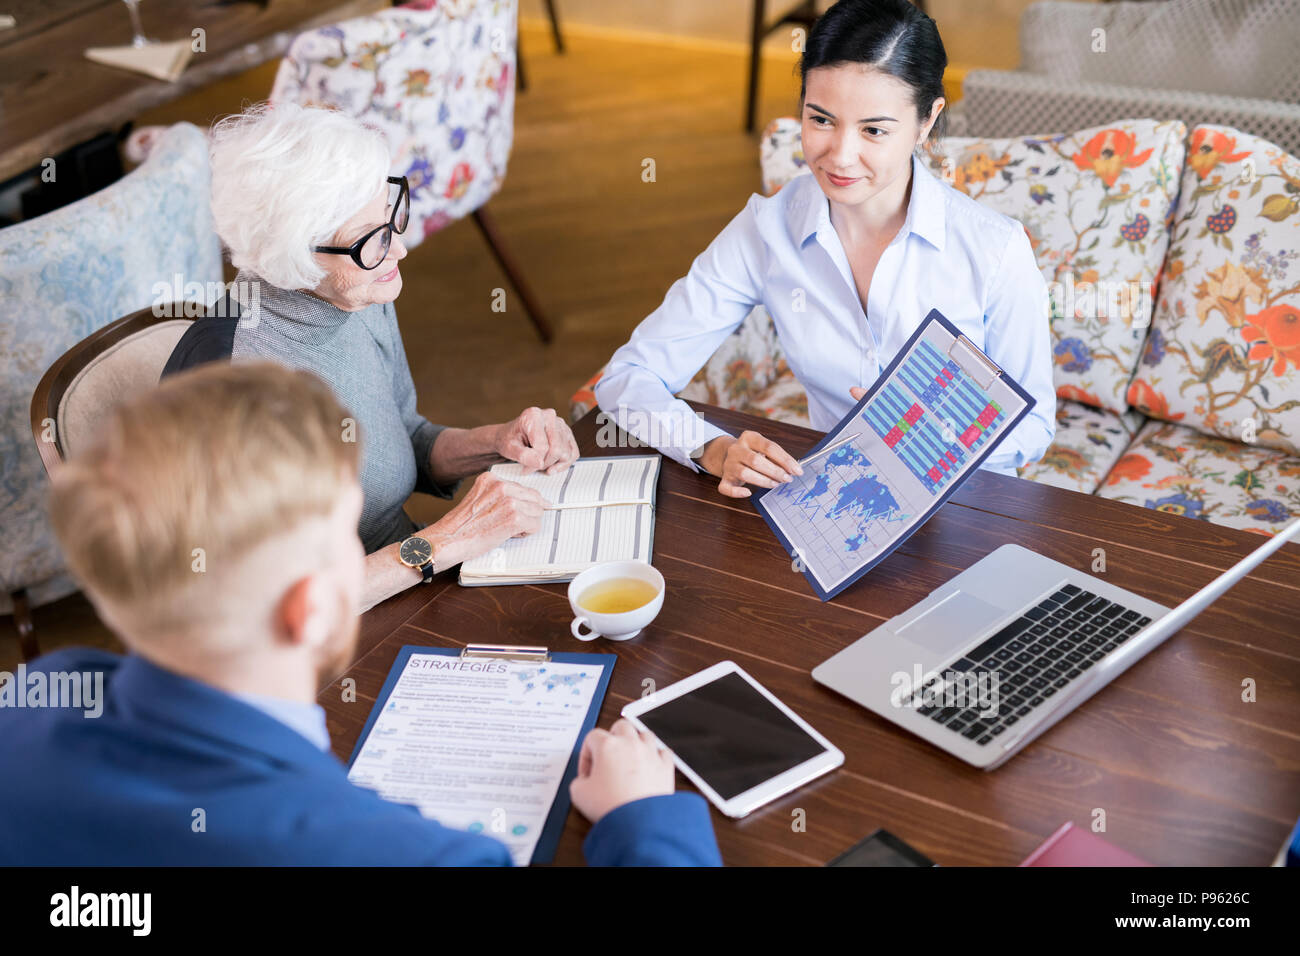 Business people planning business strategies - Stock Image